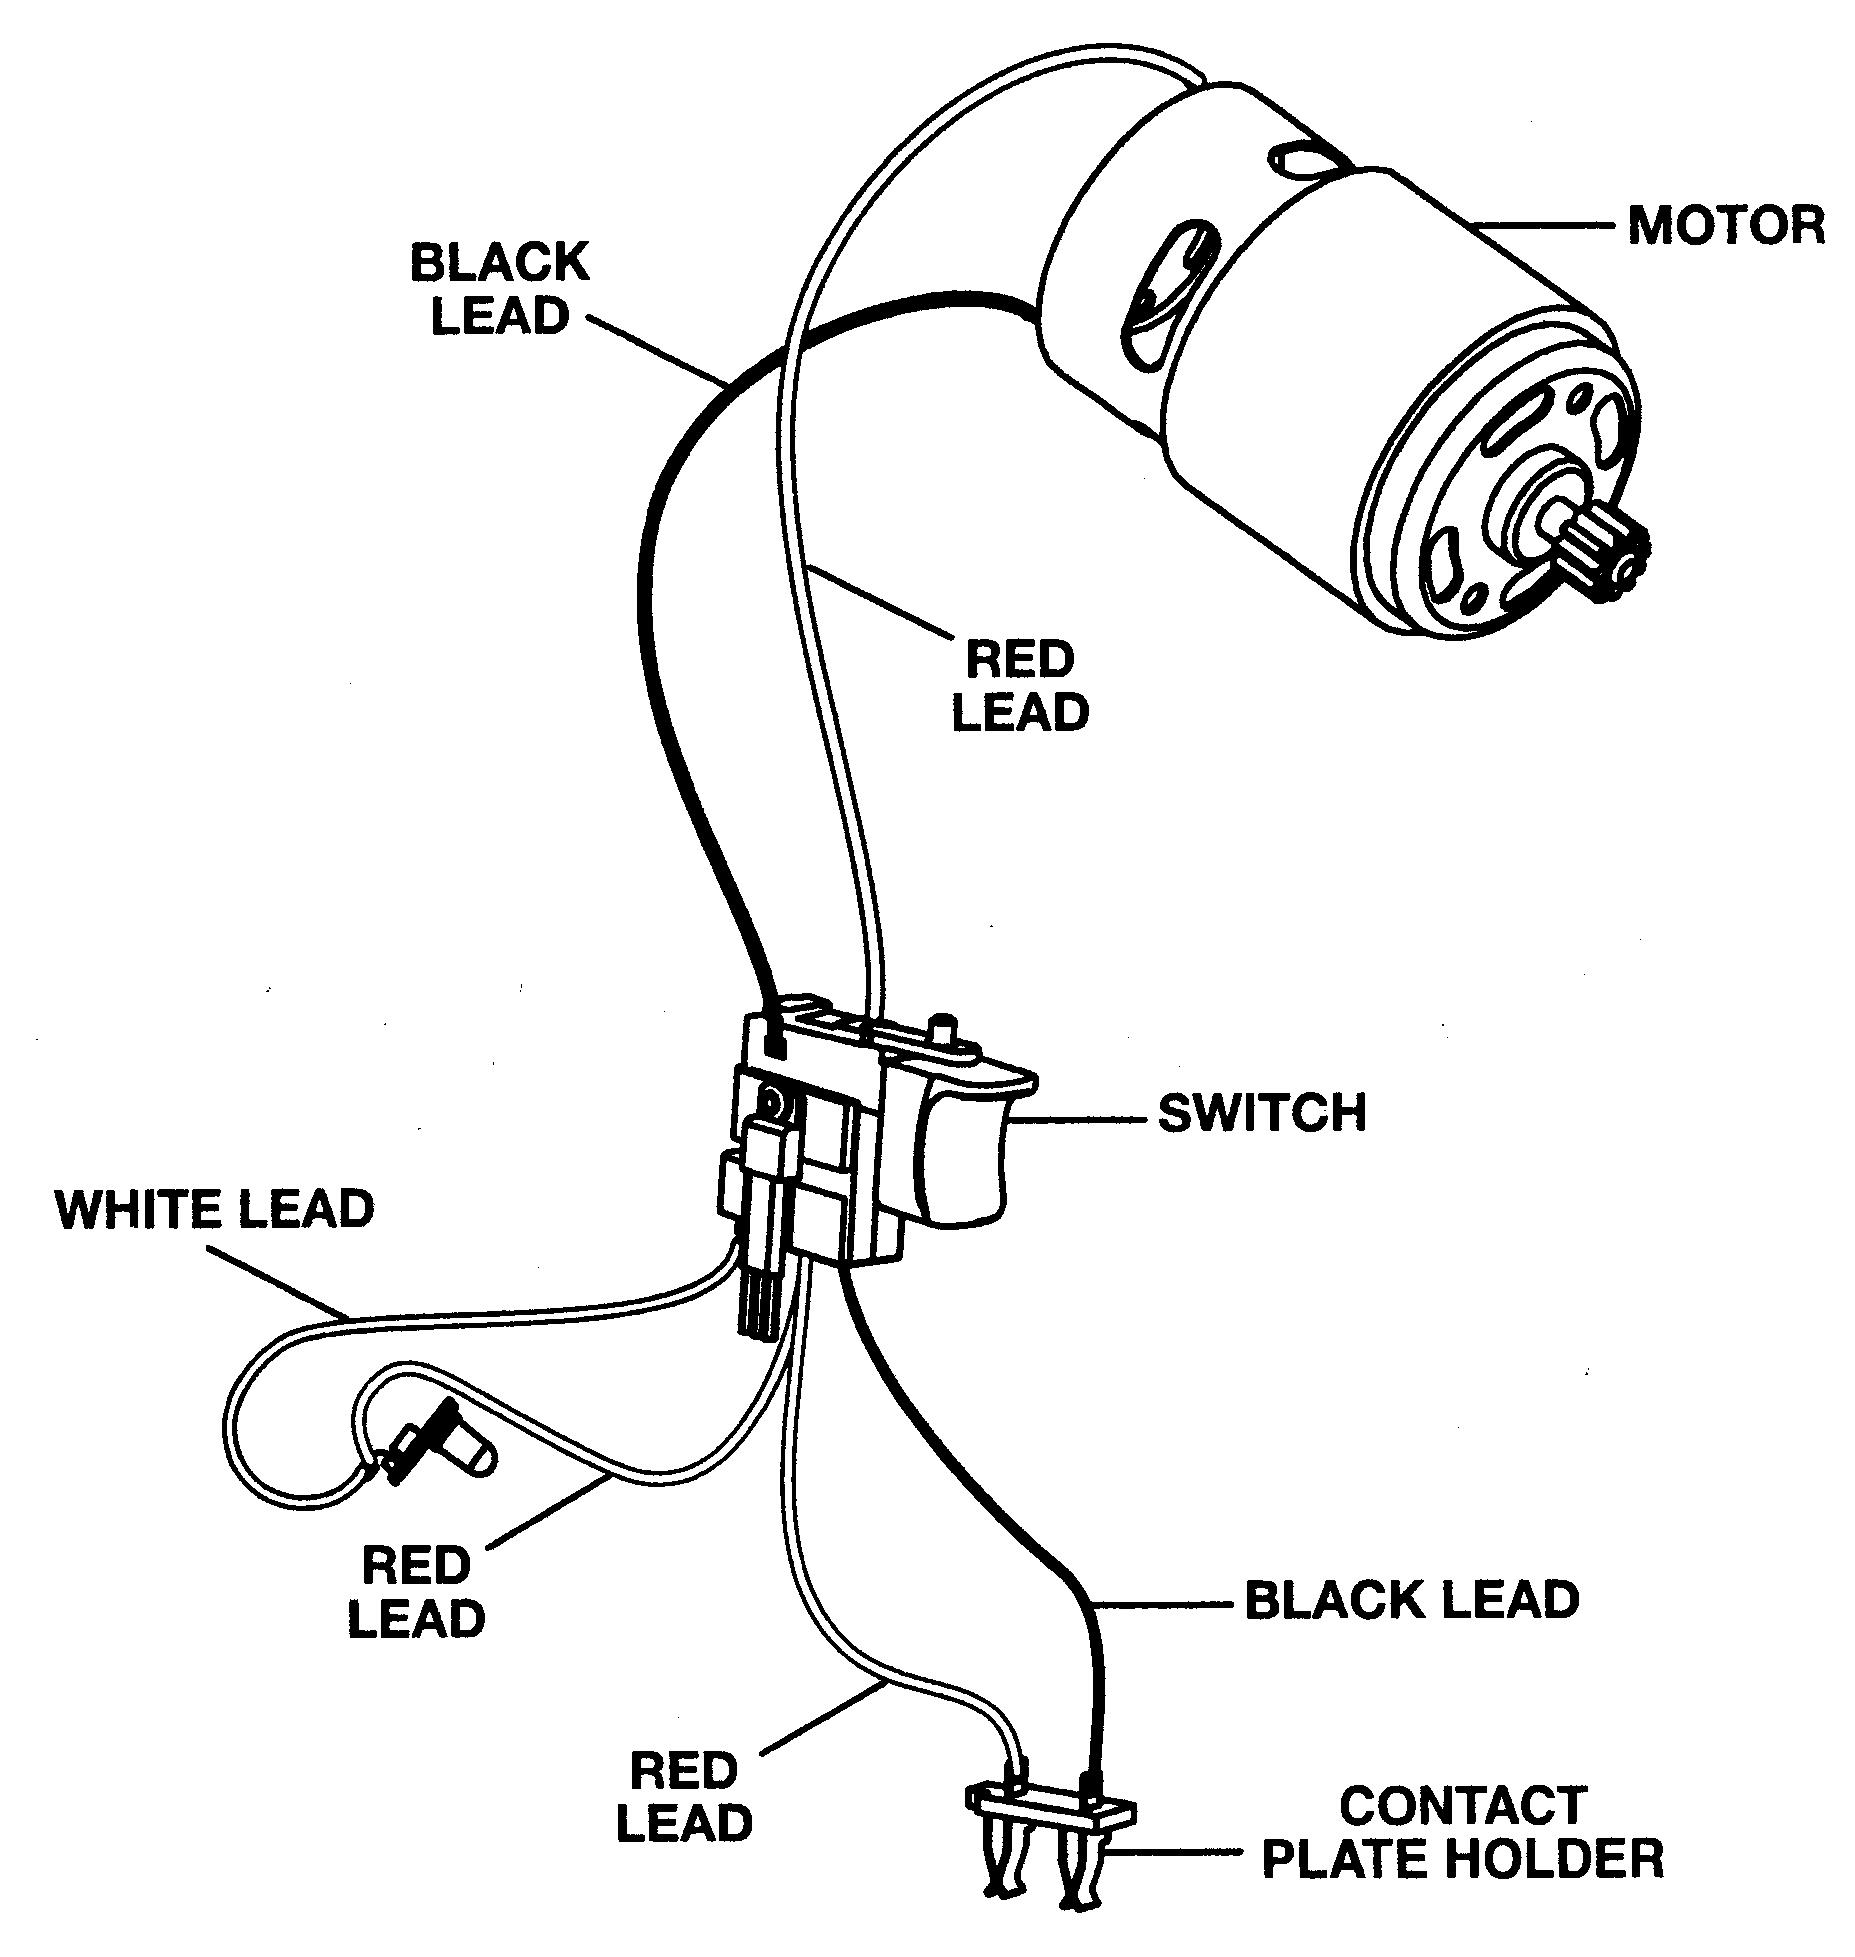 Craftsman 315115340 wiring diagram diagram